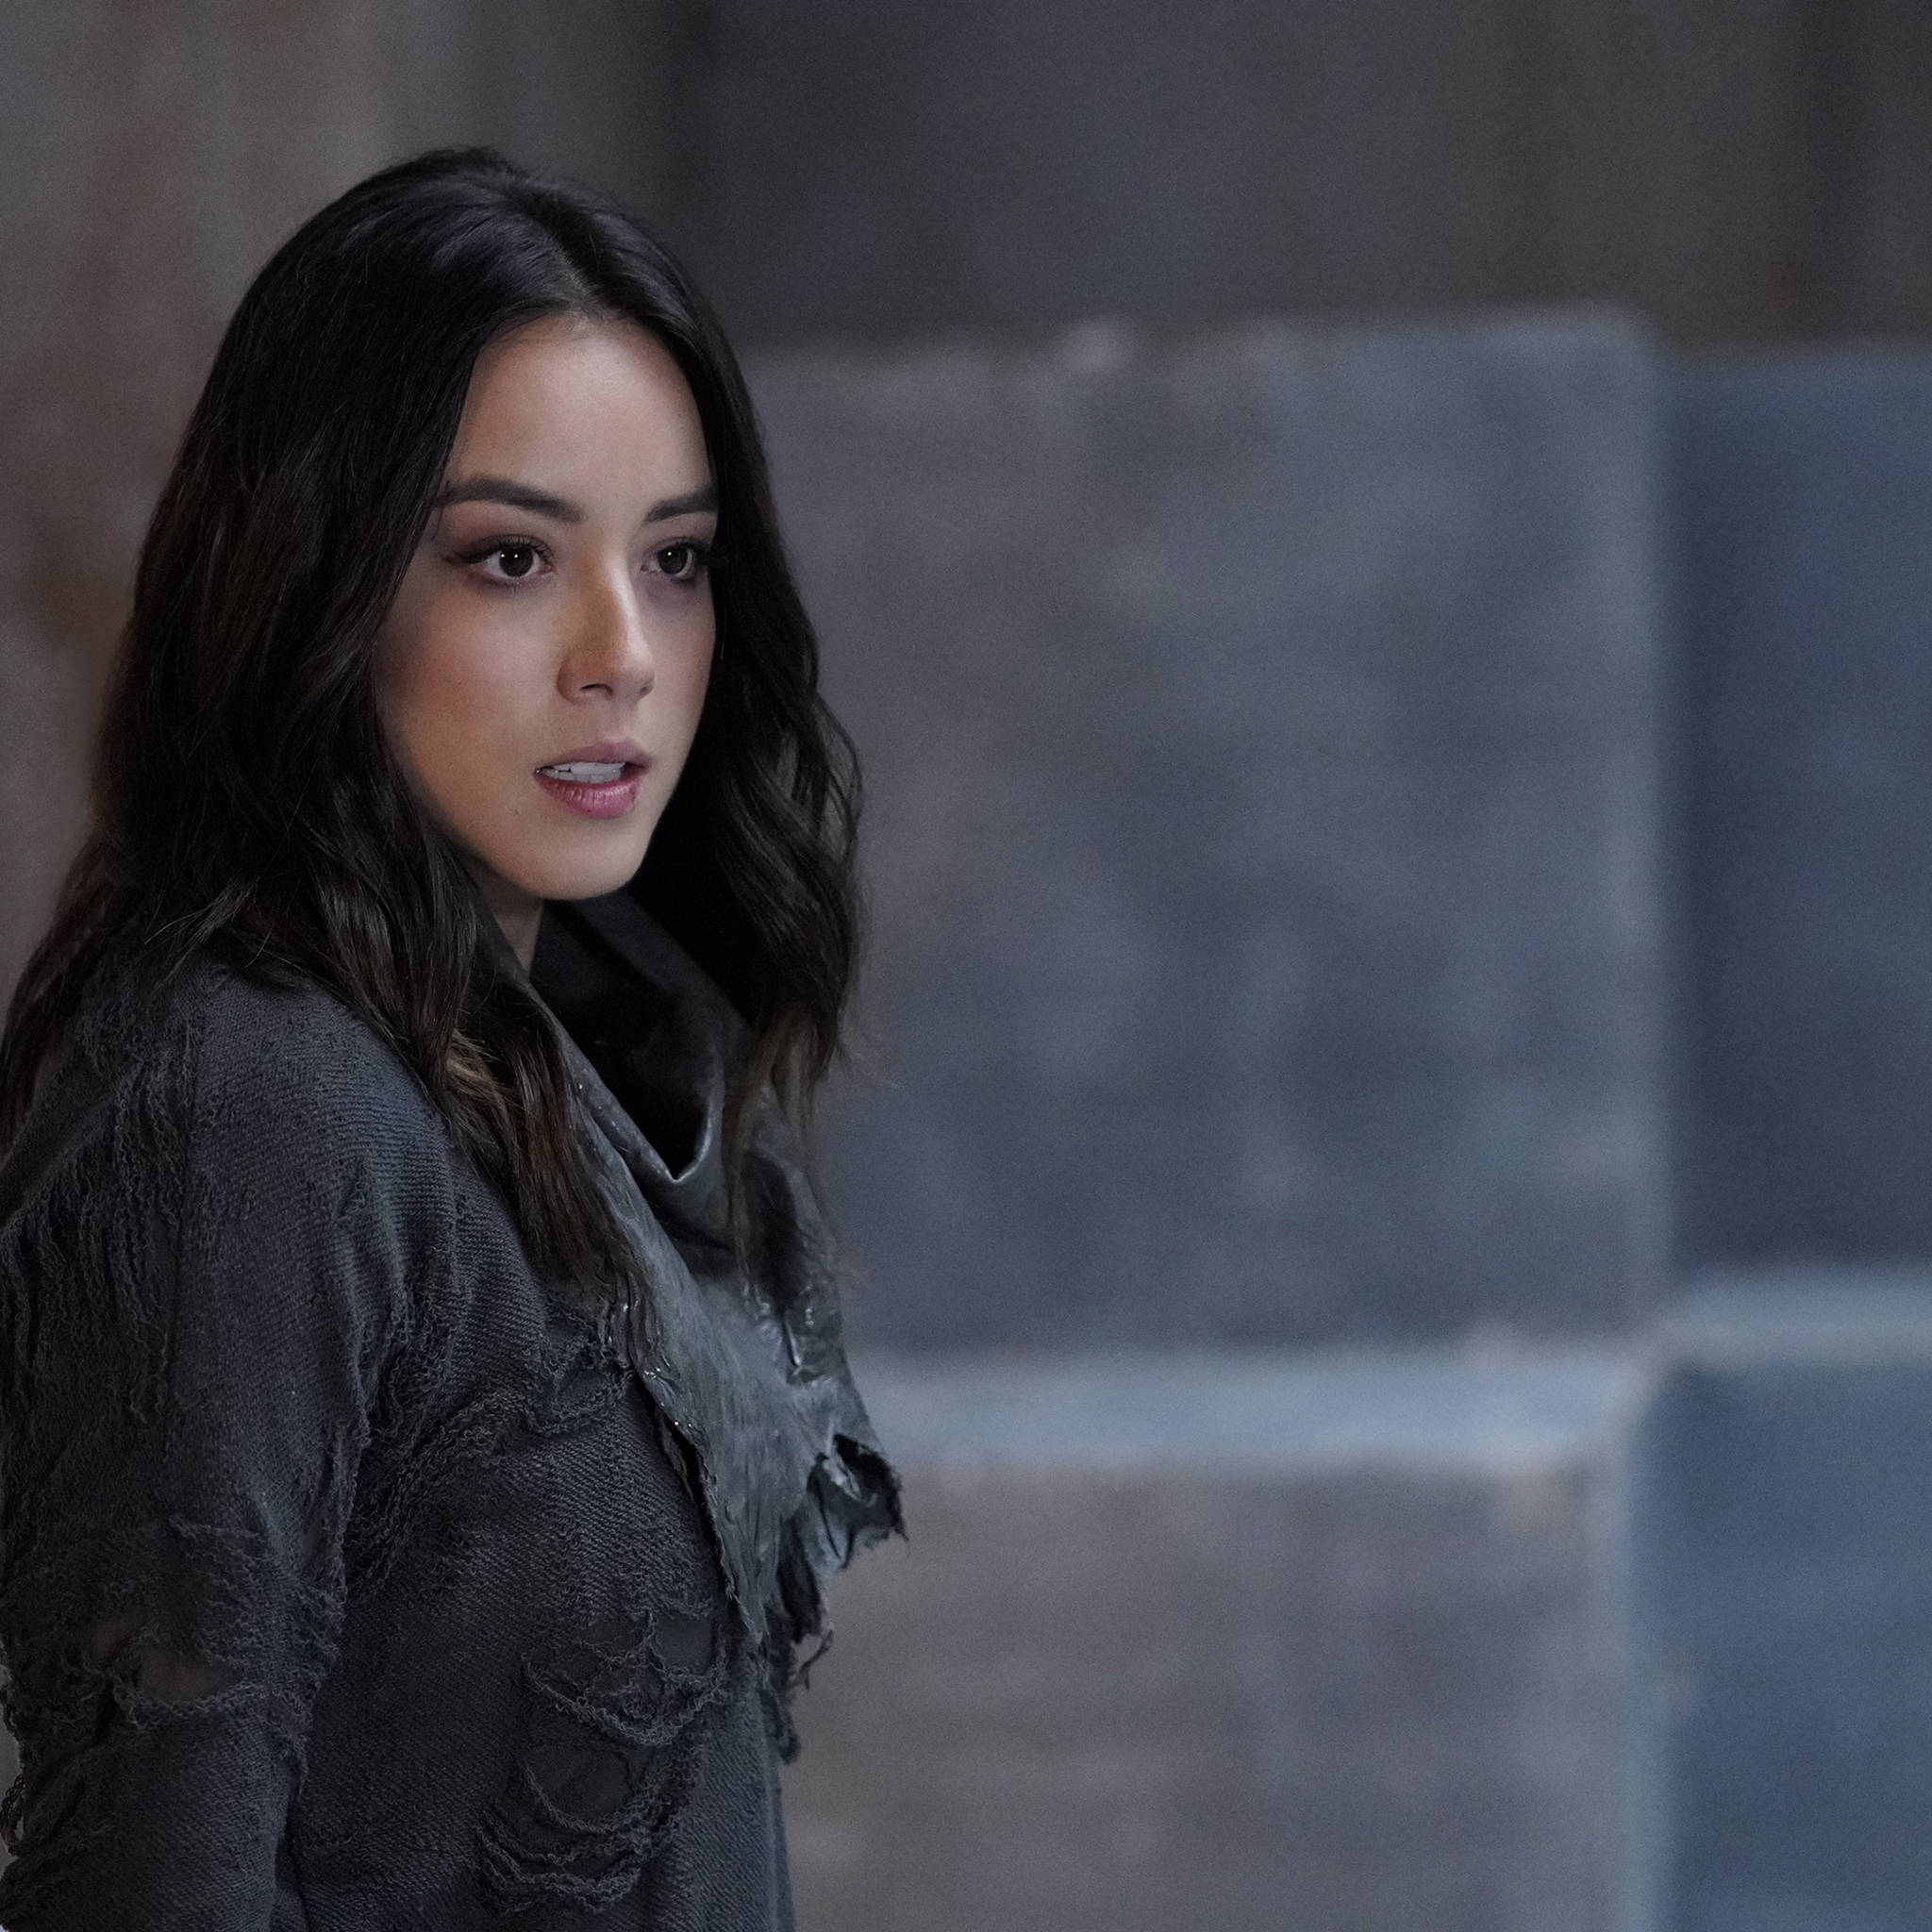 chloe-bennet-as-daisy-johnson-in-agent-of-shield-season-5-ui.jpg